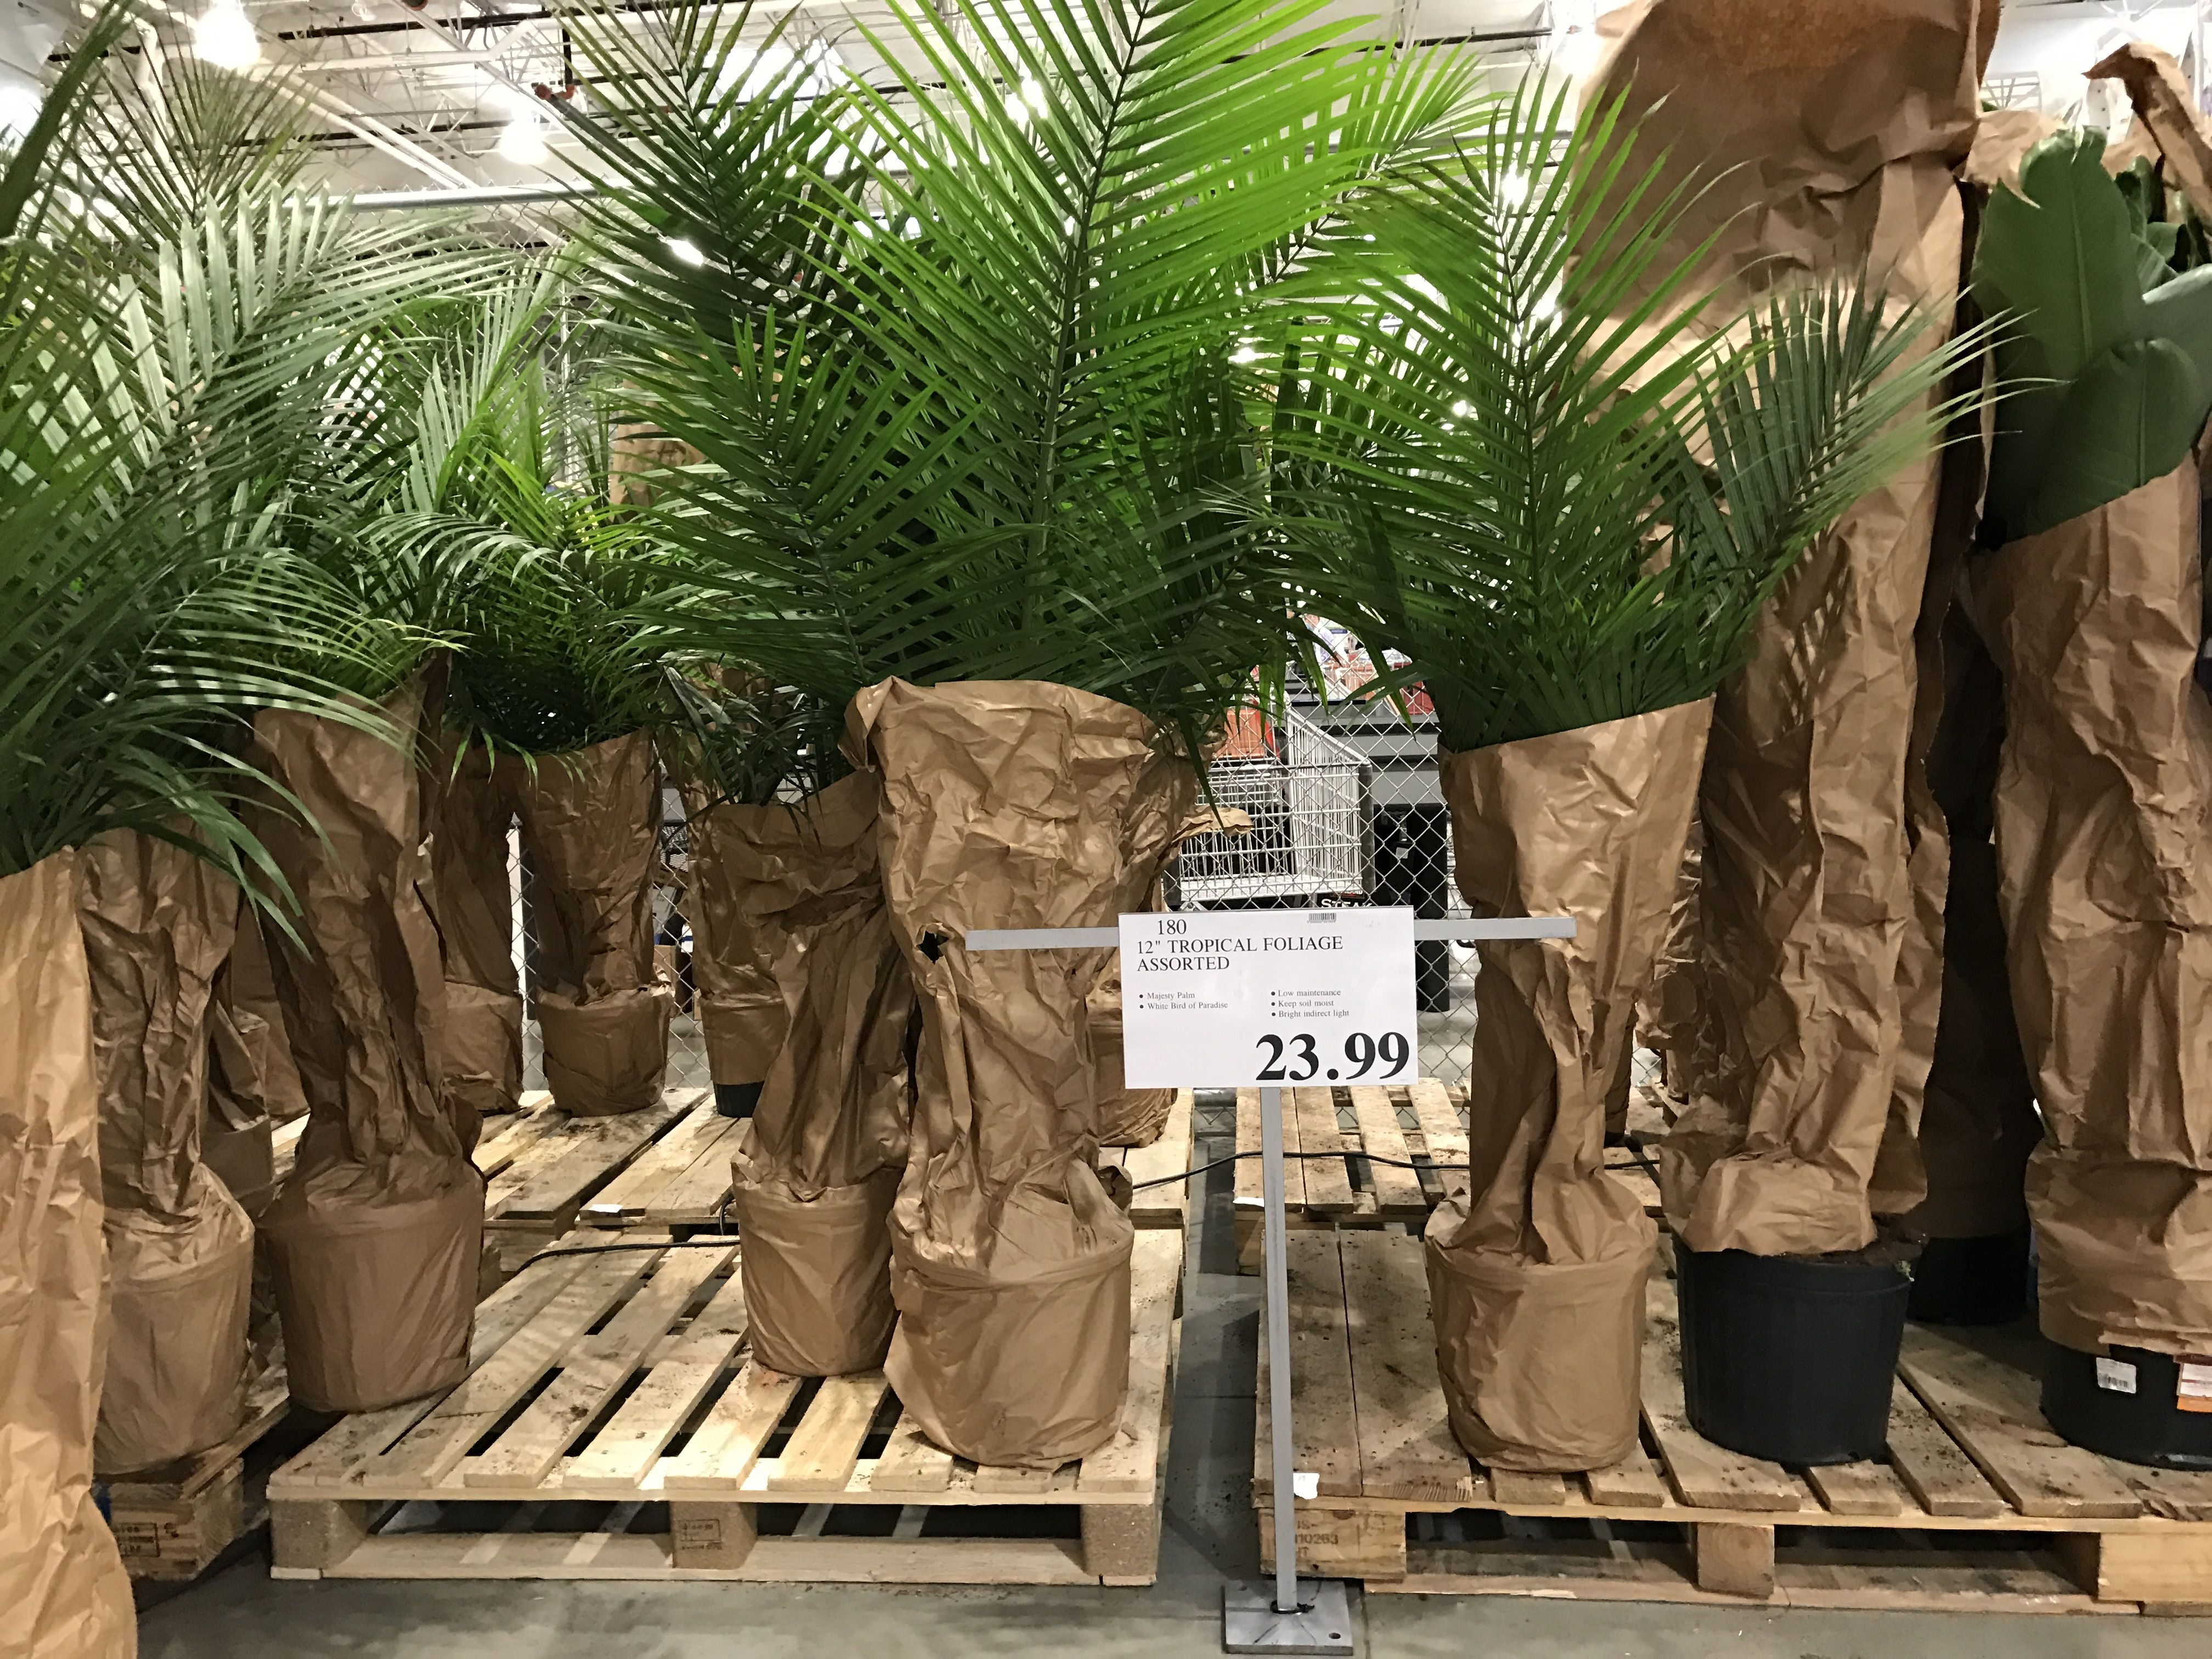 Costco Live Palm Plants Available In Store Rivertown